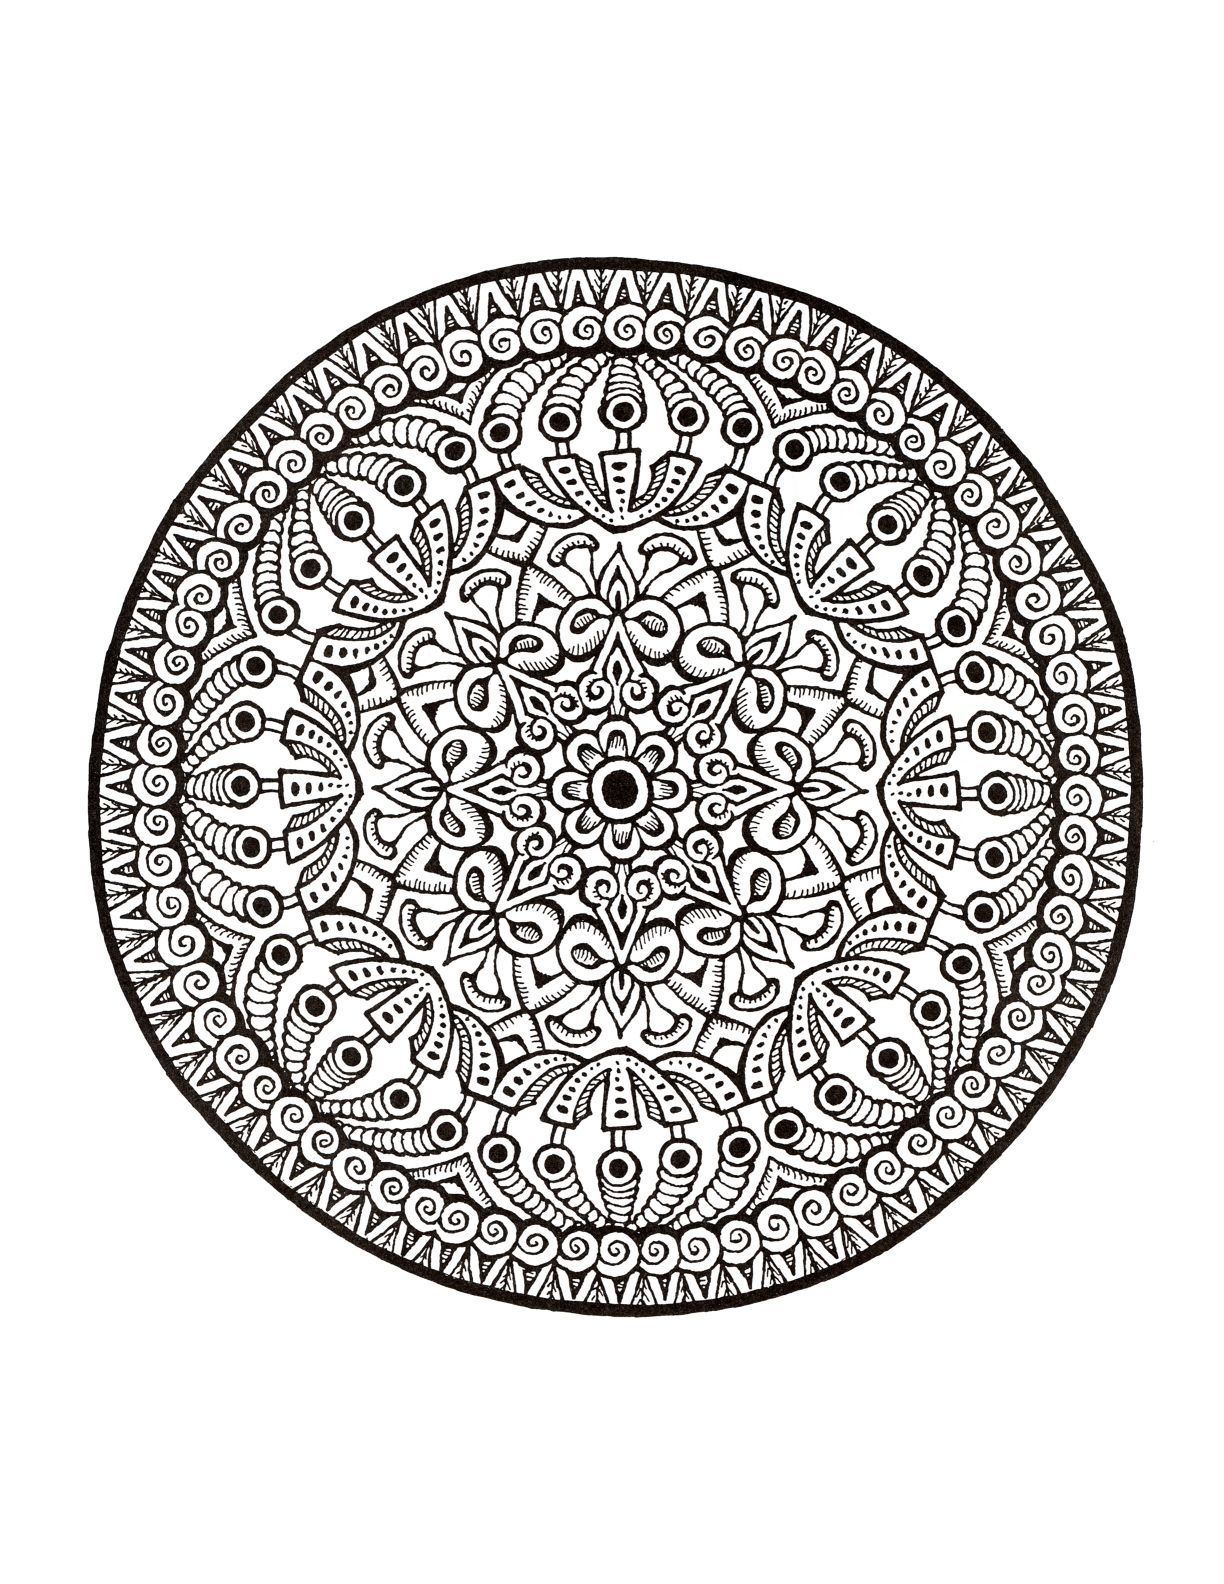 Mystical Mandala Coloring Book Completed Coloring Mandala